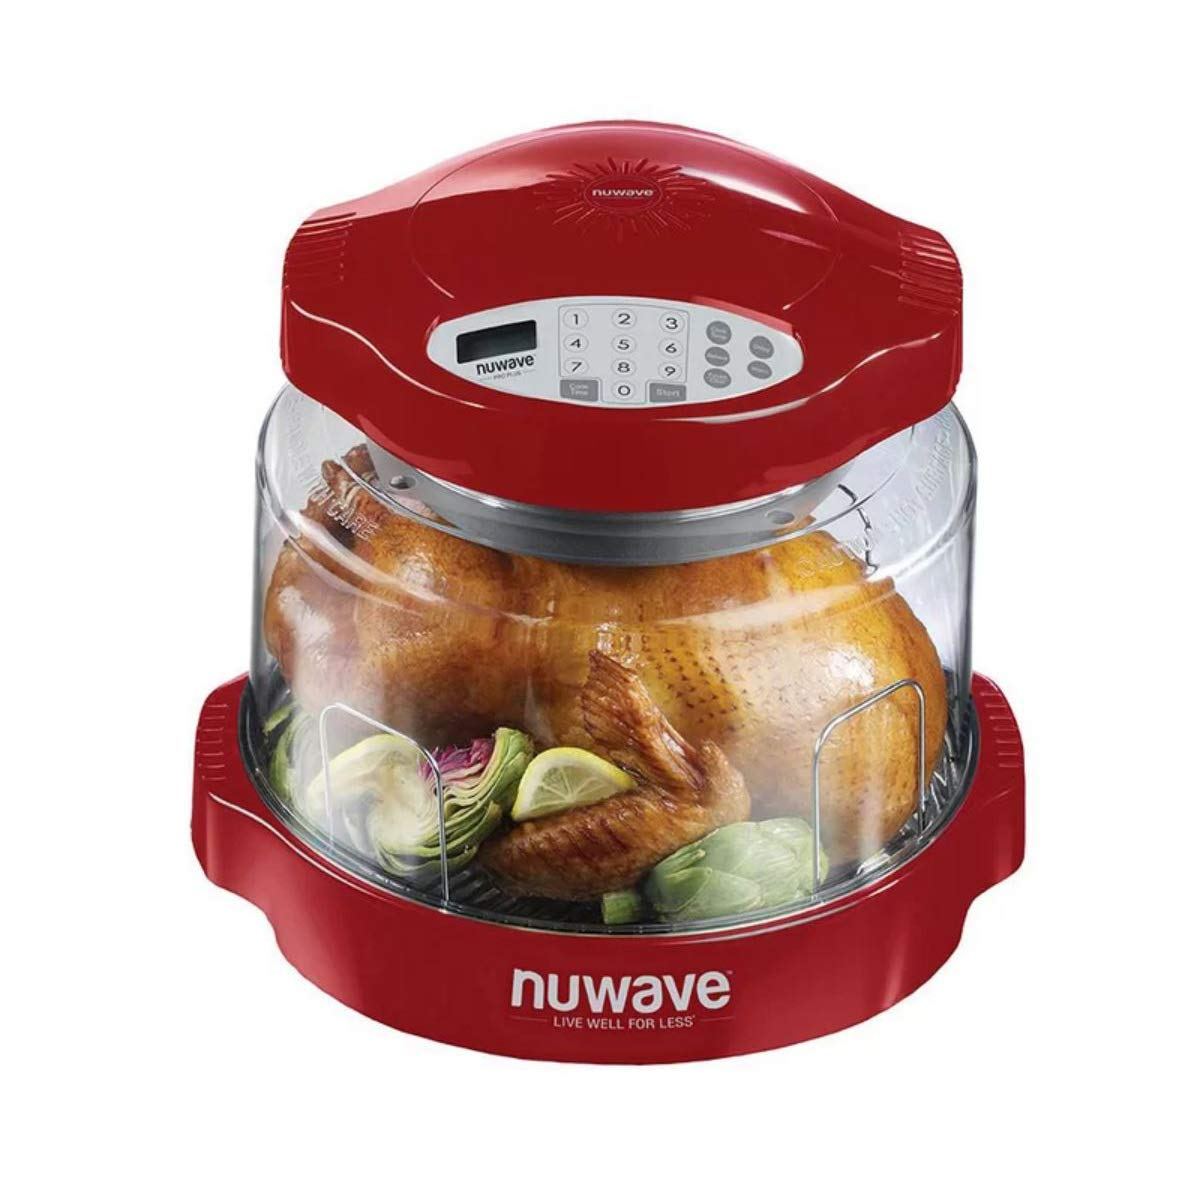 NuWave Oven Red Pro Plus with Clear Dome by NuWave